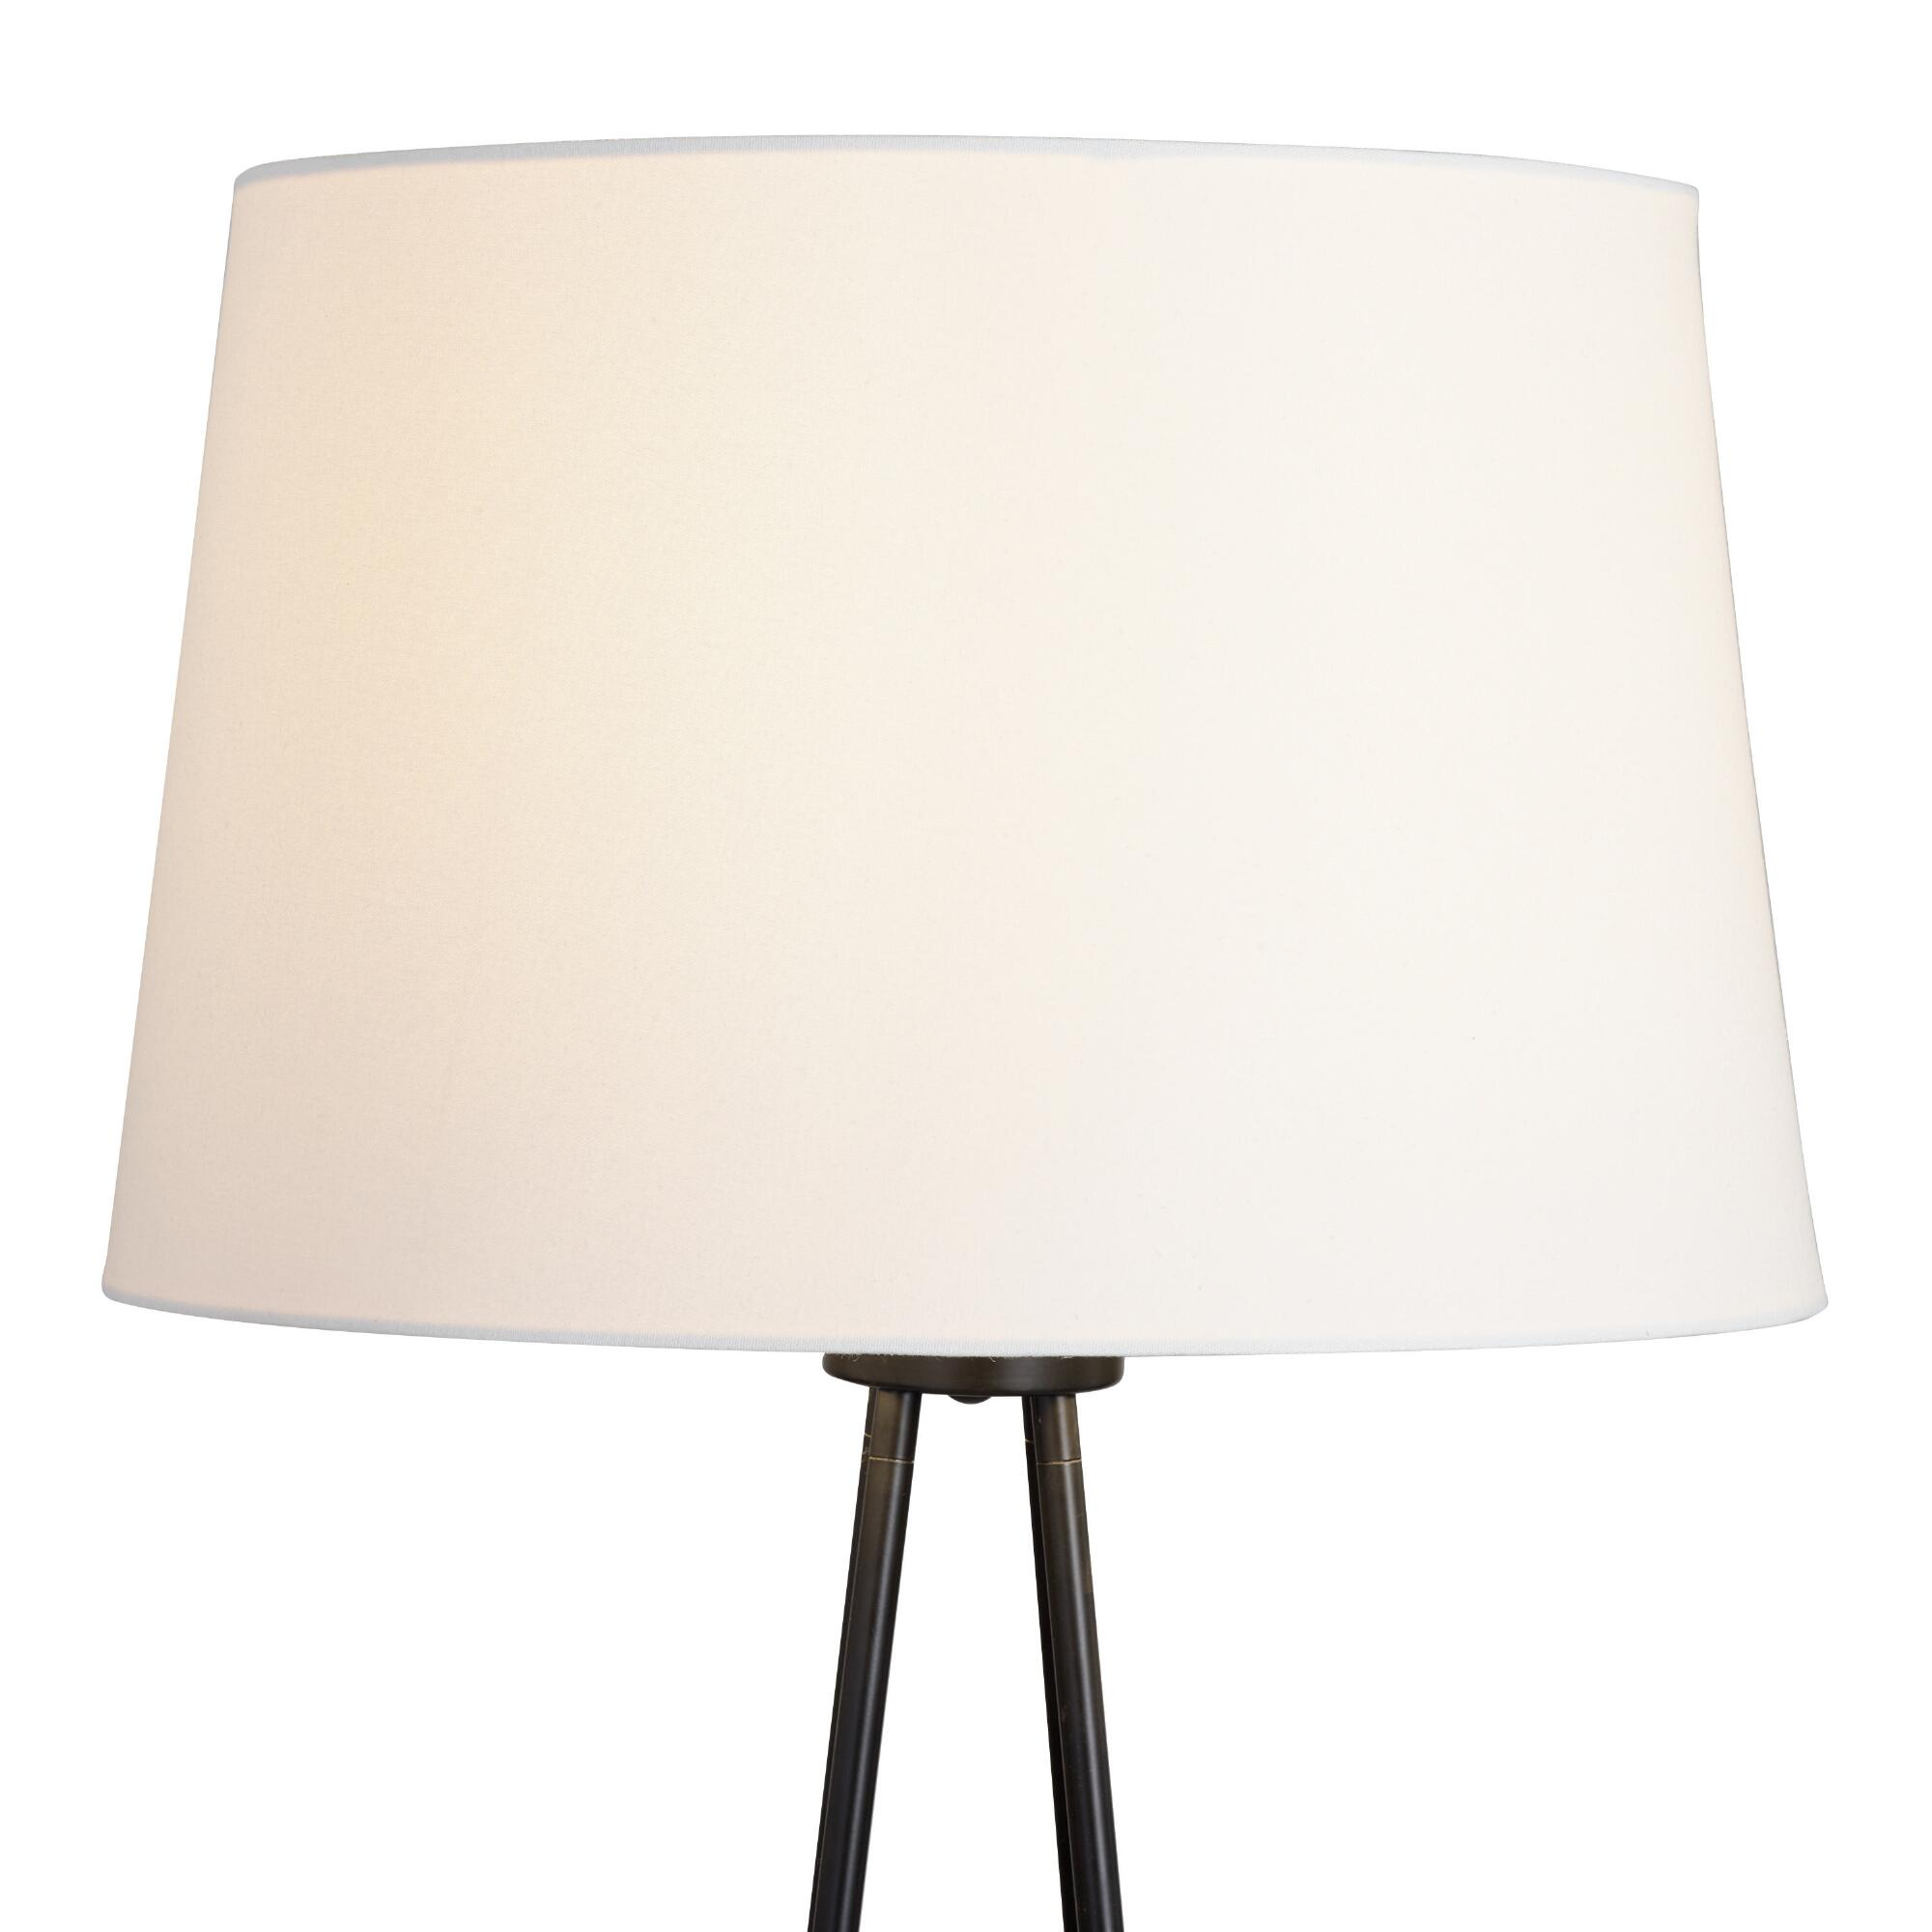 White Linen Drum Floor Lamp Shade with Gold Lining by World Market